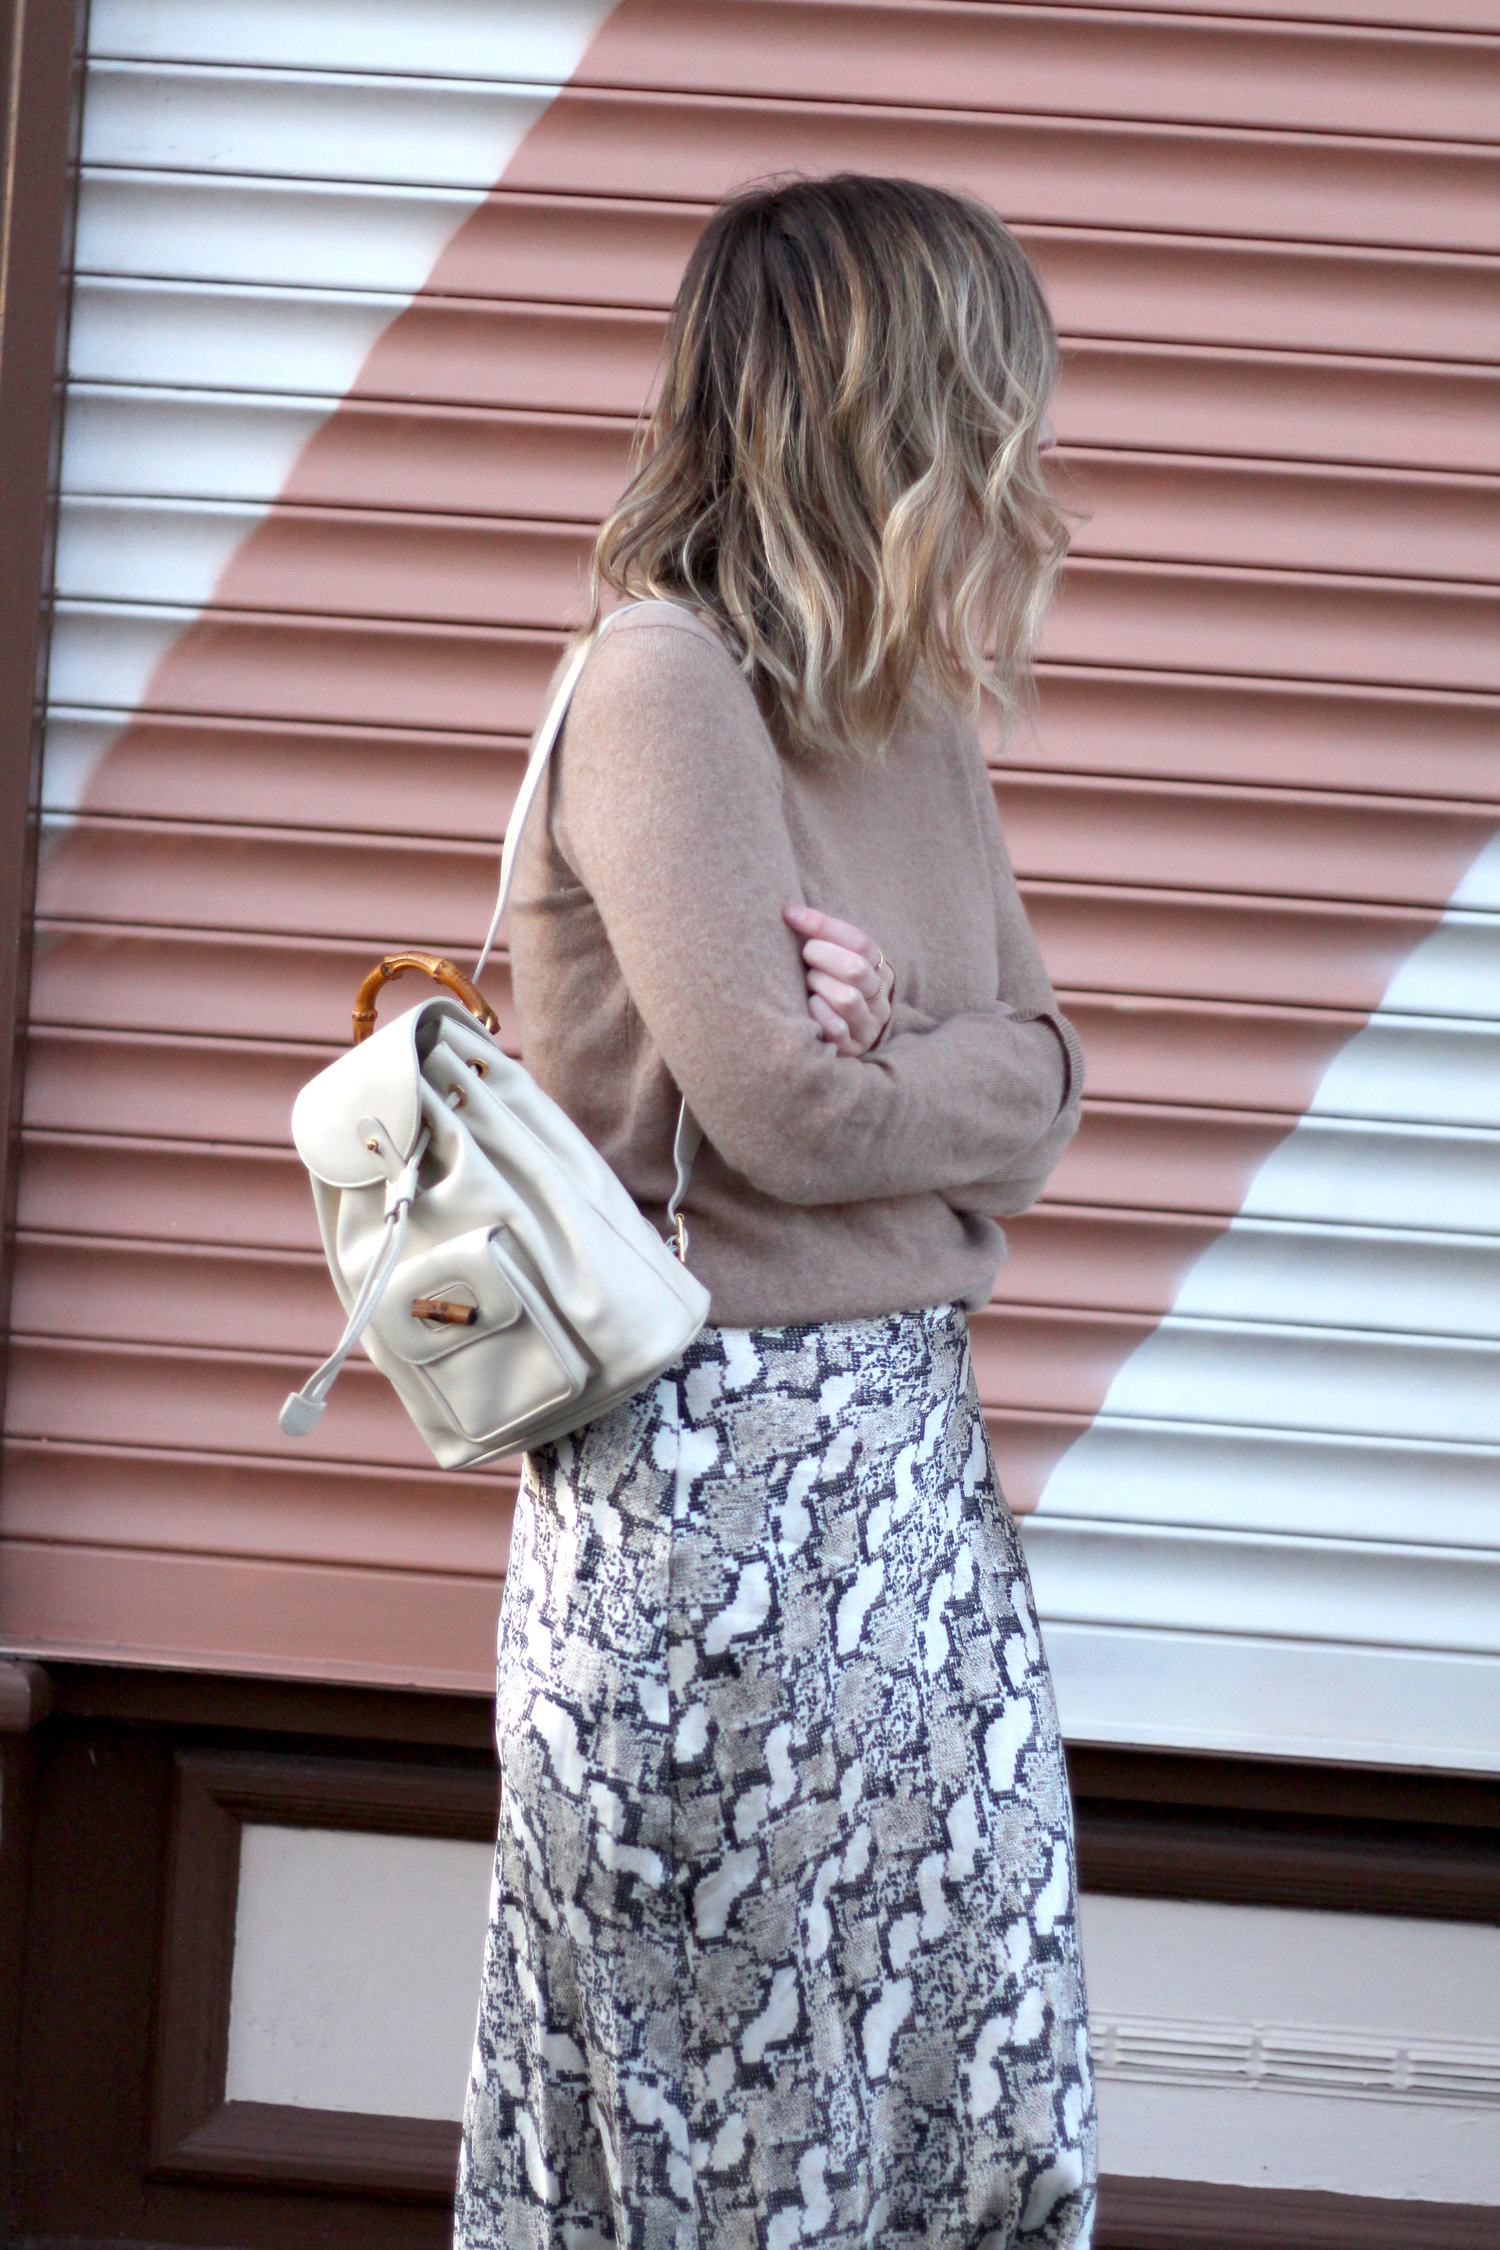 h&m-snakeprint-midi-skirt-vintage-gucci-backpack-4